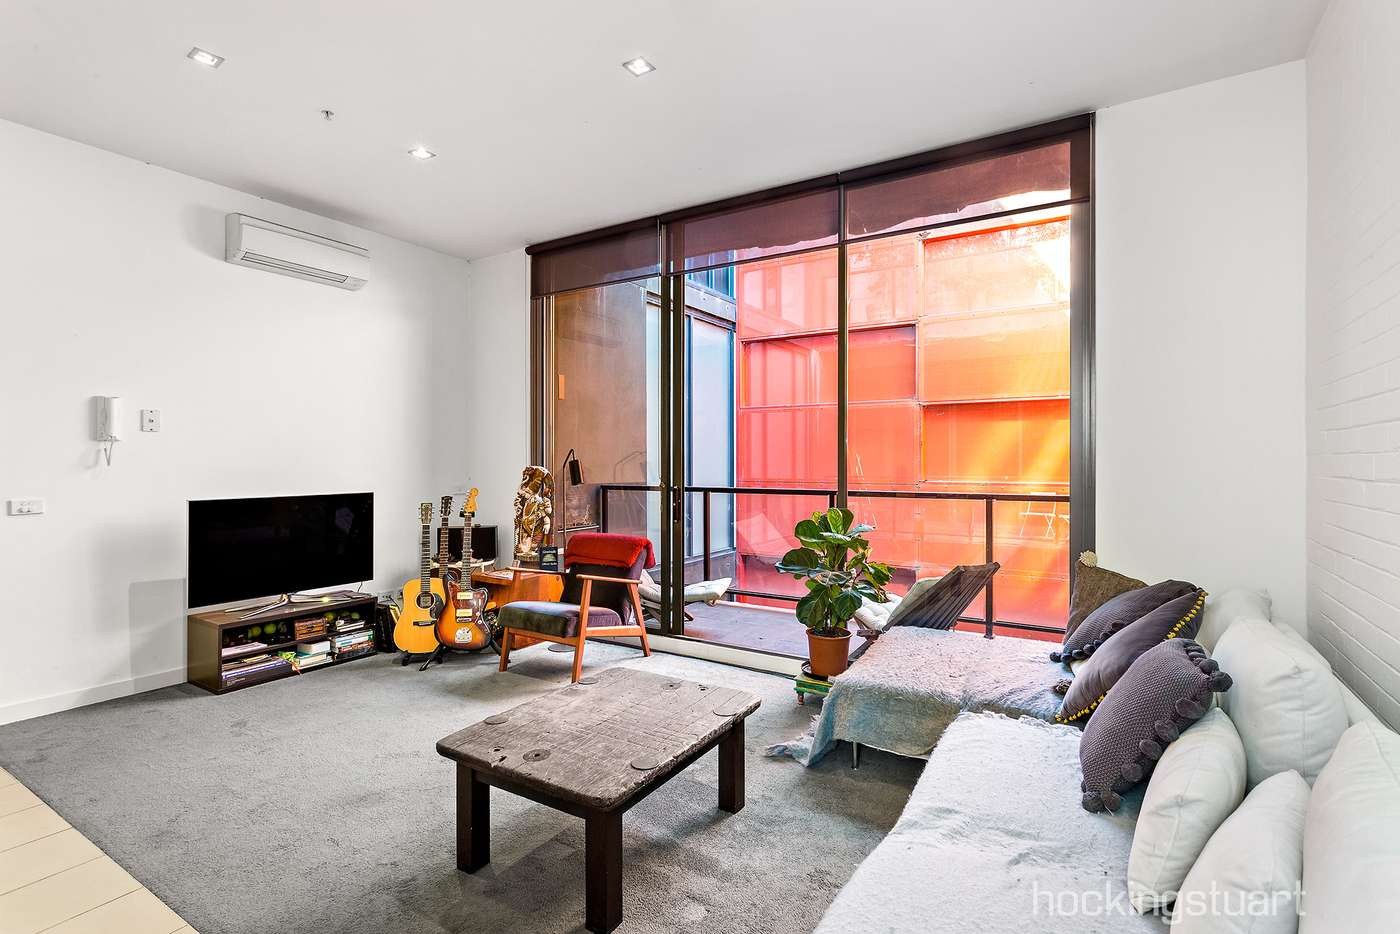 Fifth view of Homely apartment listing, 118/264 Drummond Street, Carlton VIC 3053